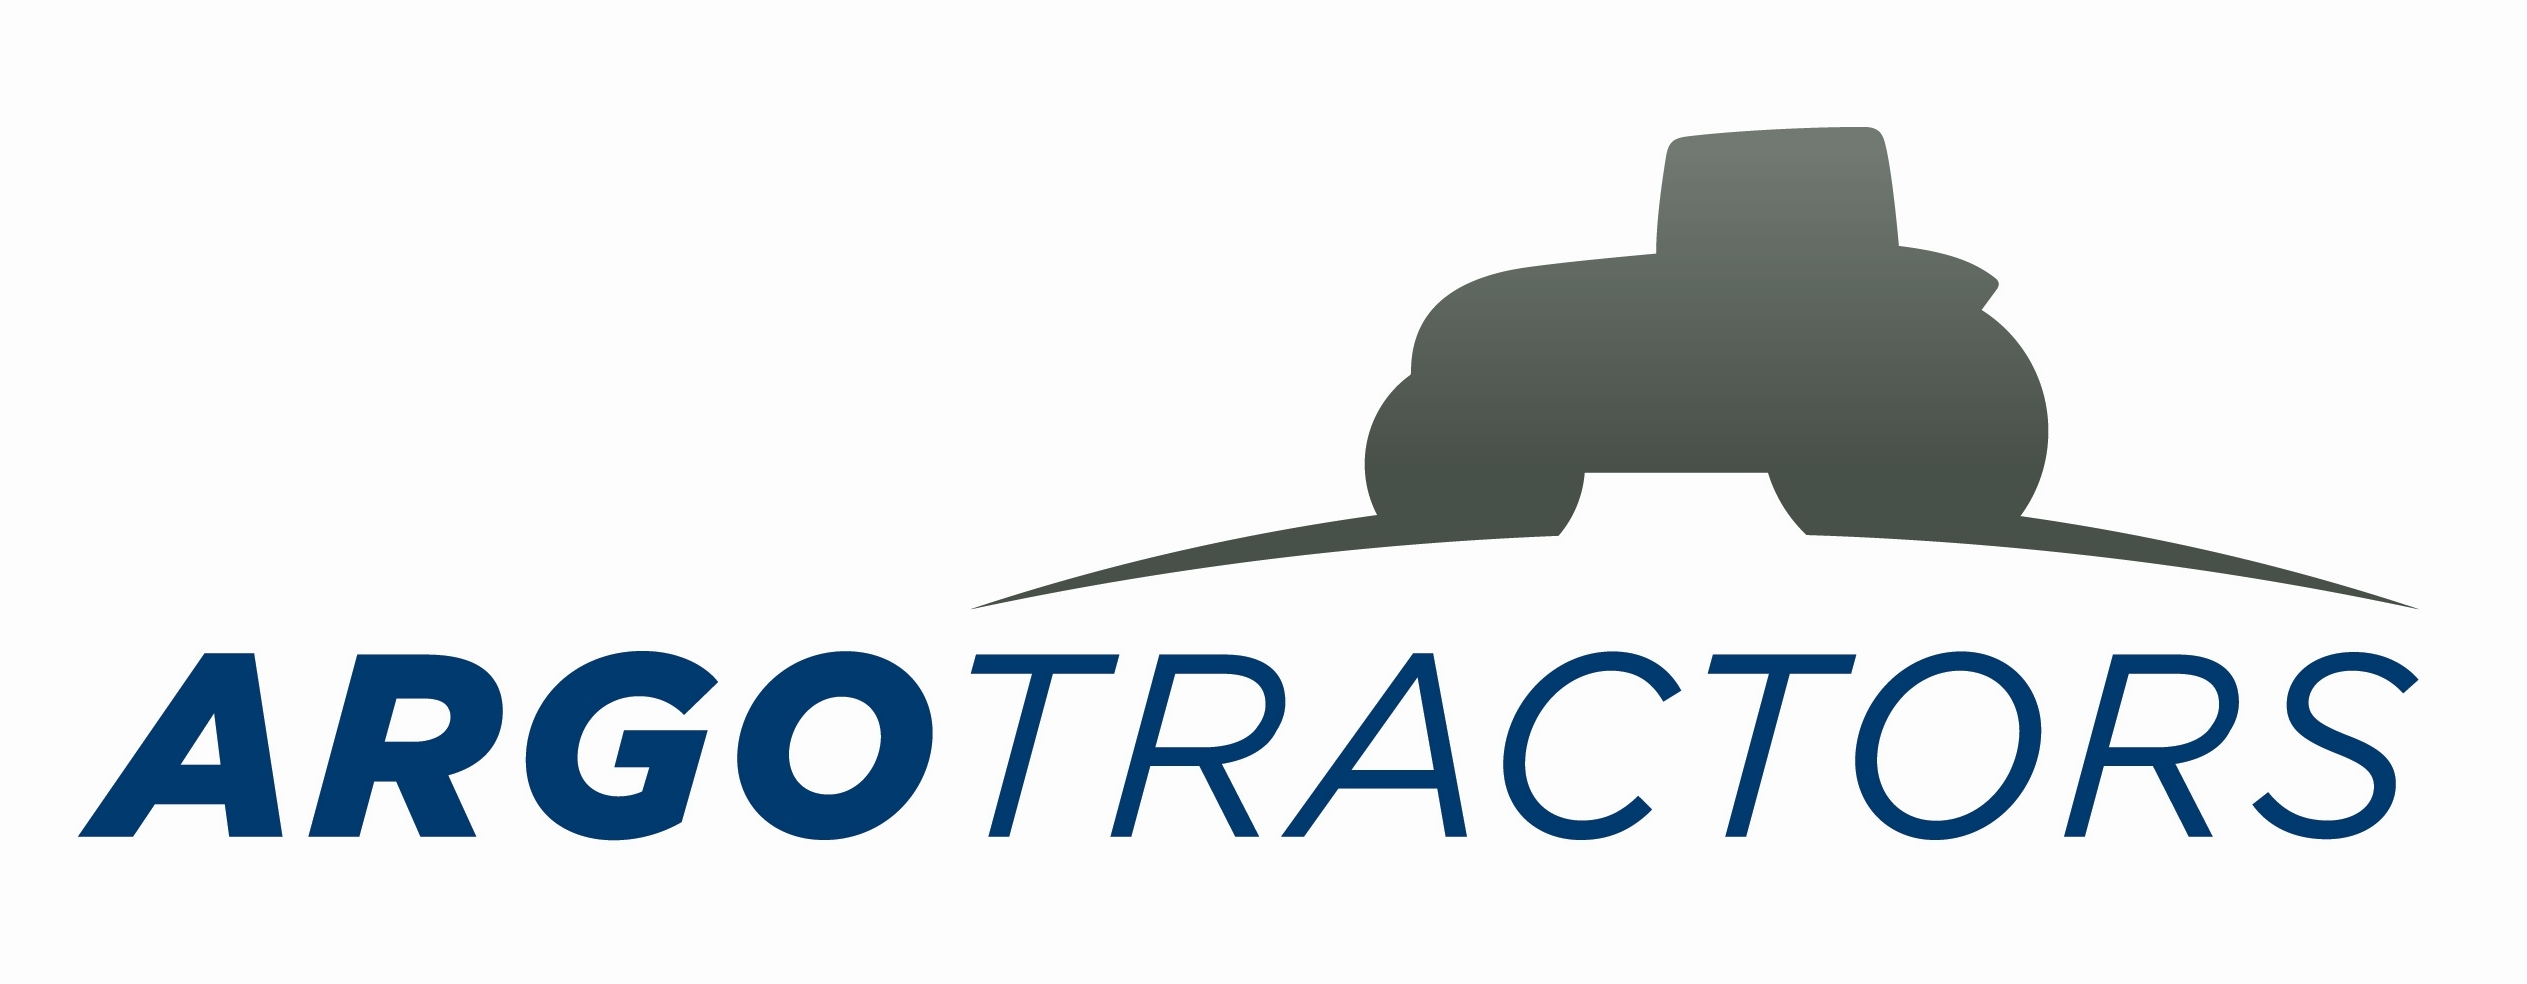 argo tractors expands with new product families